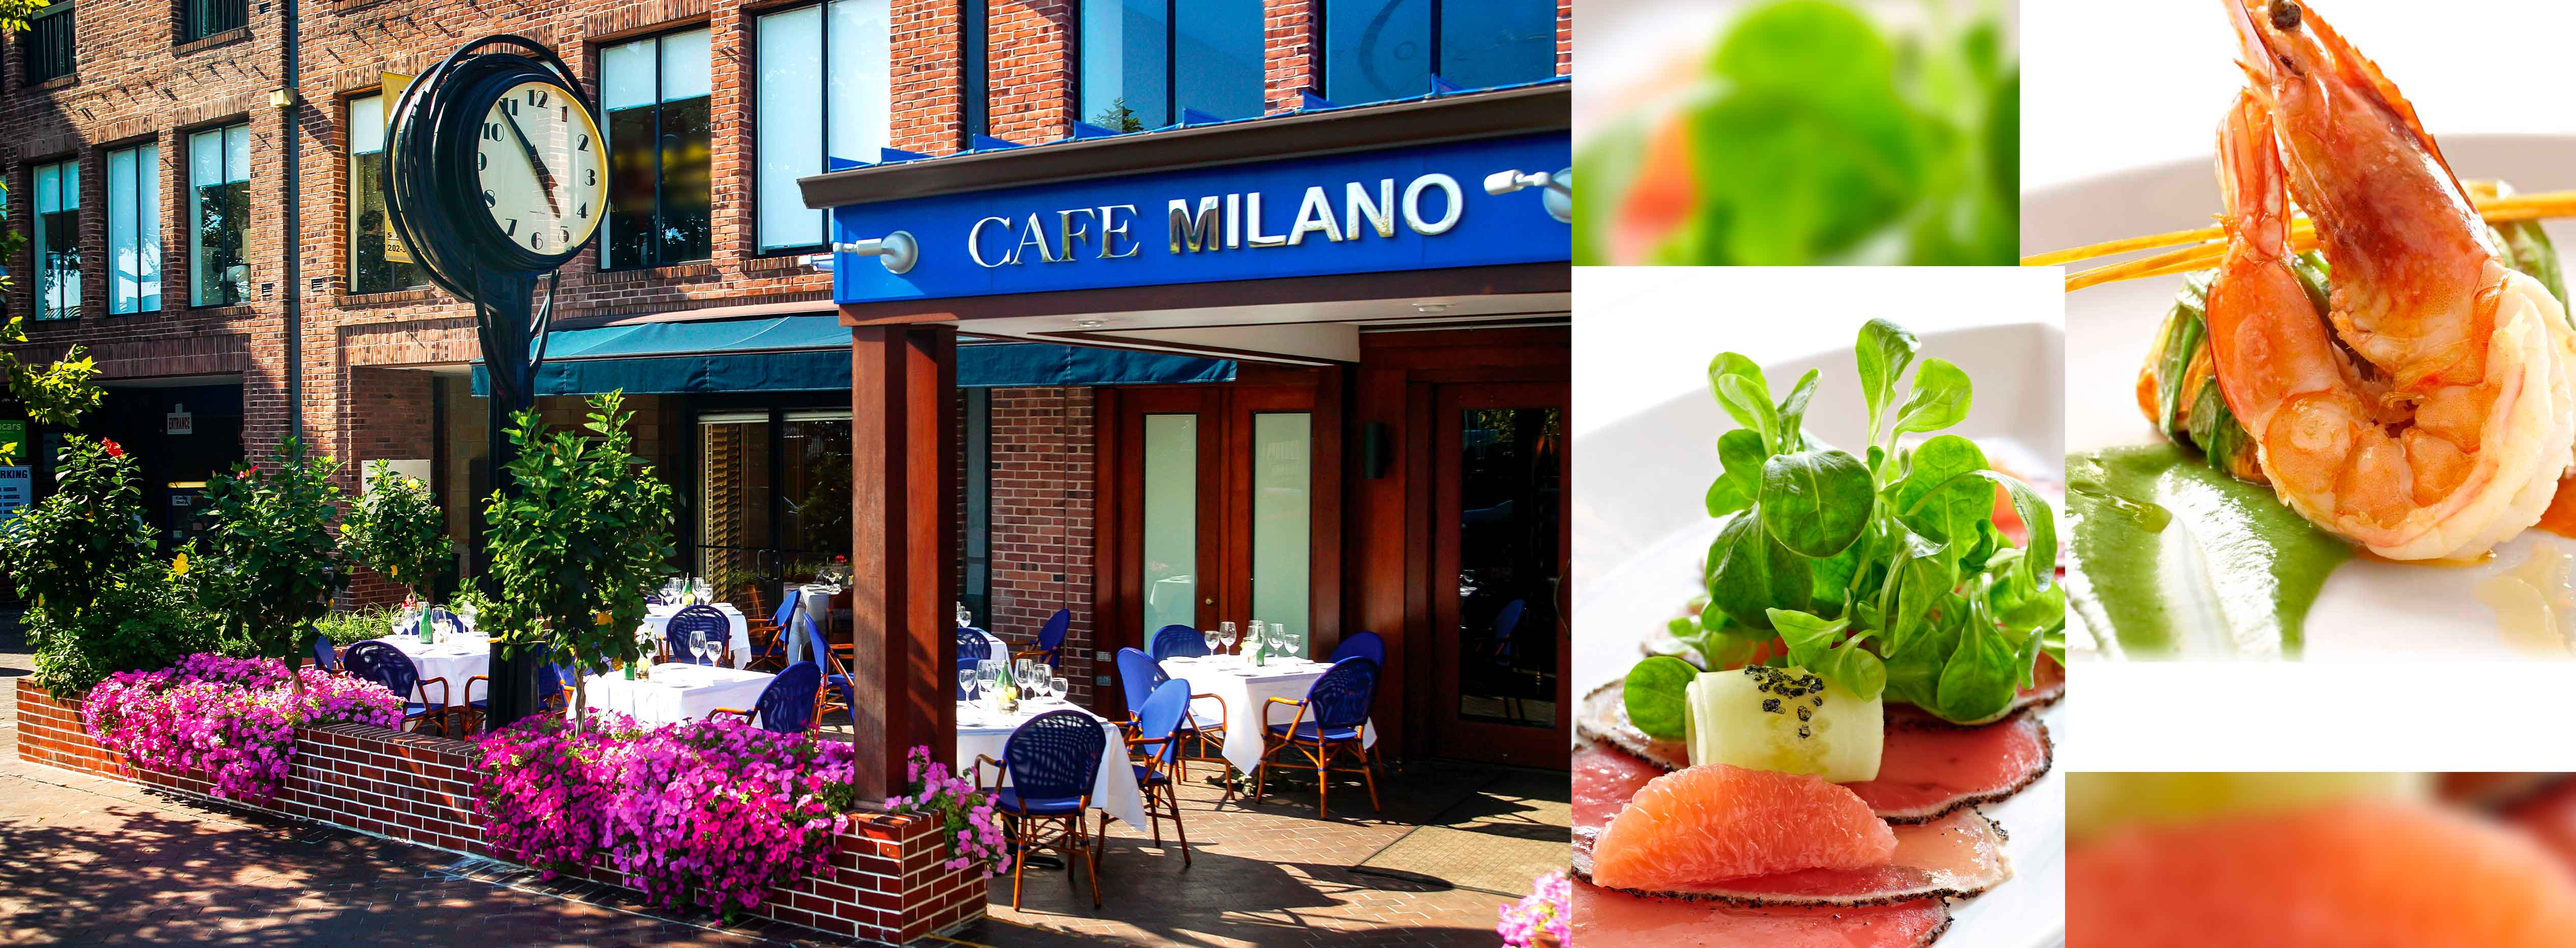 , Cafe Milano | Washington, DC, AMERICAN ACADEMY OF HOSPITALITY SCIENCES